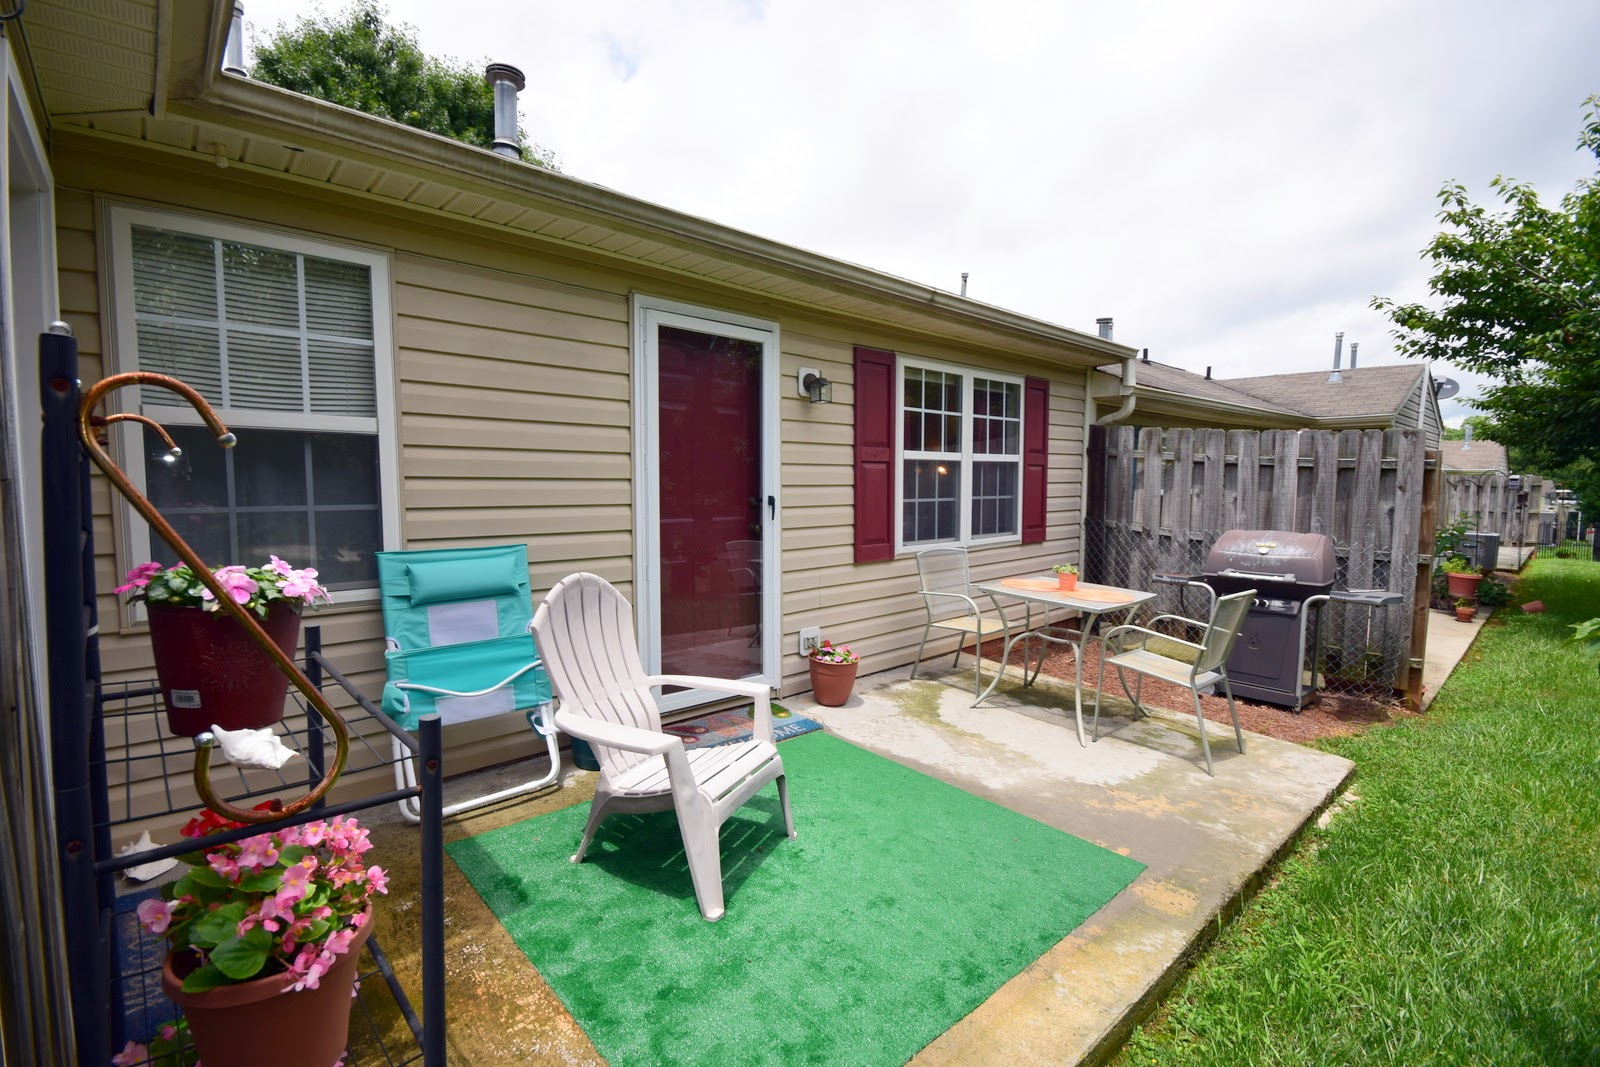 price reduction at 106 troonsway rd 2br 2 bath home